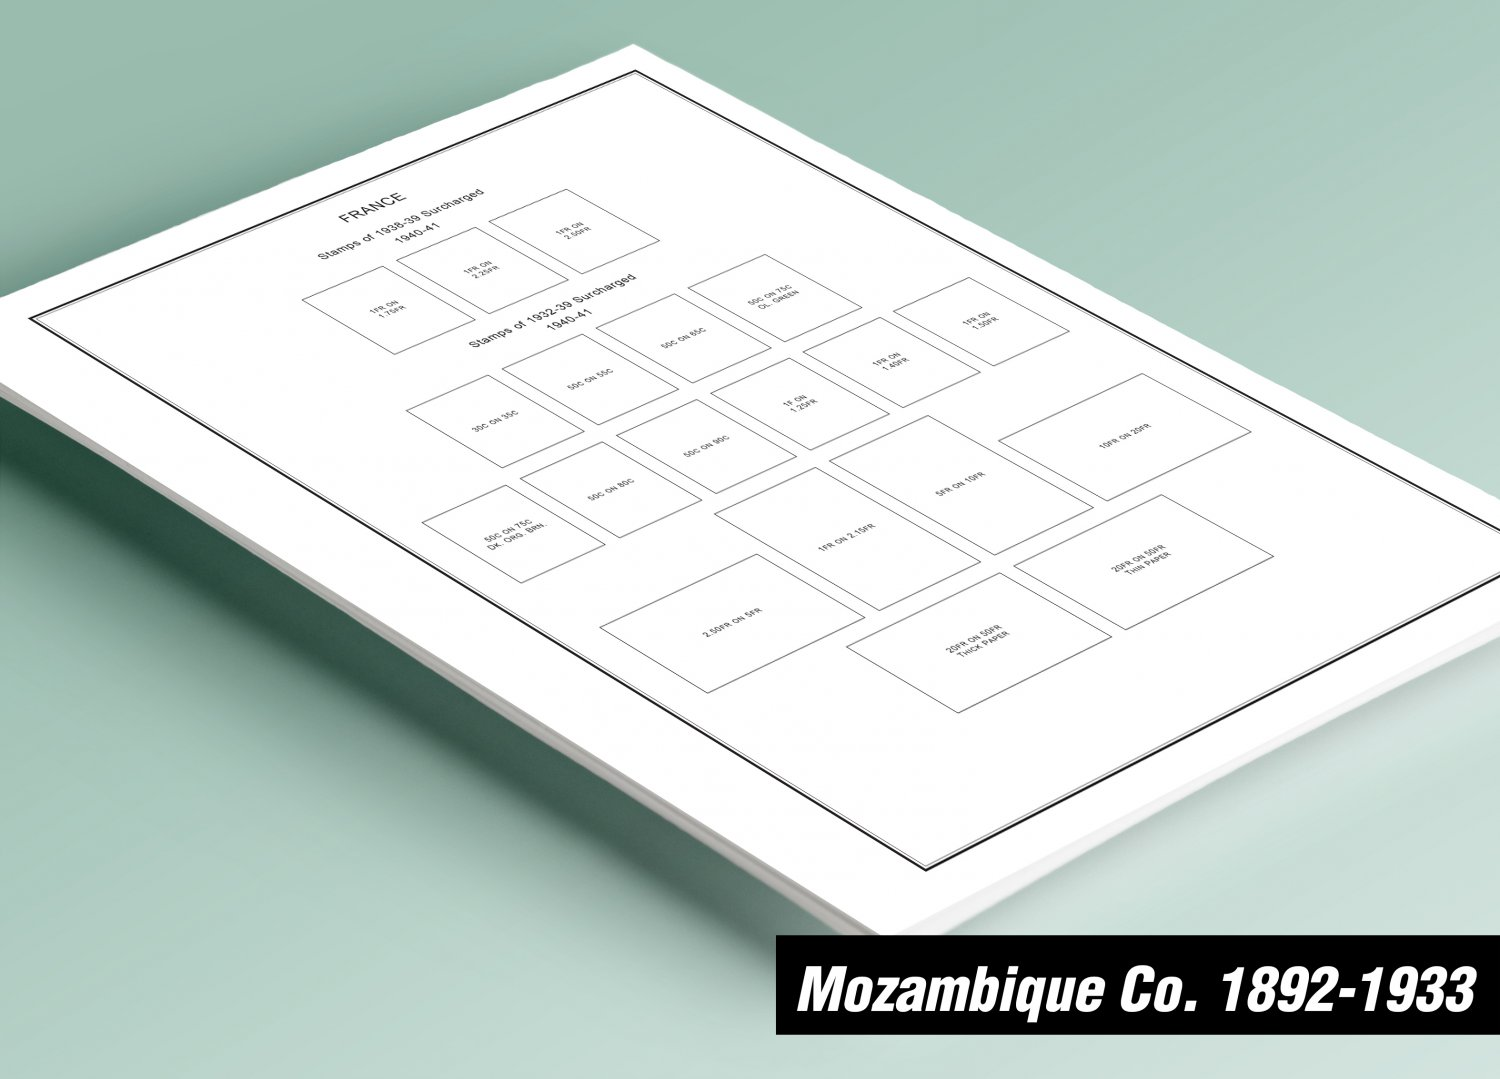 PRINTED MOZAMBIQUE COMPANY 1892-1933 STAMP ALBUM PAGES (18 pages)